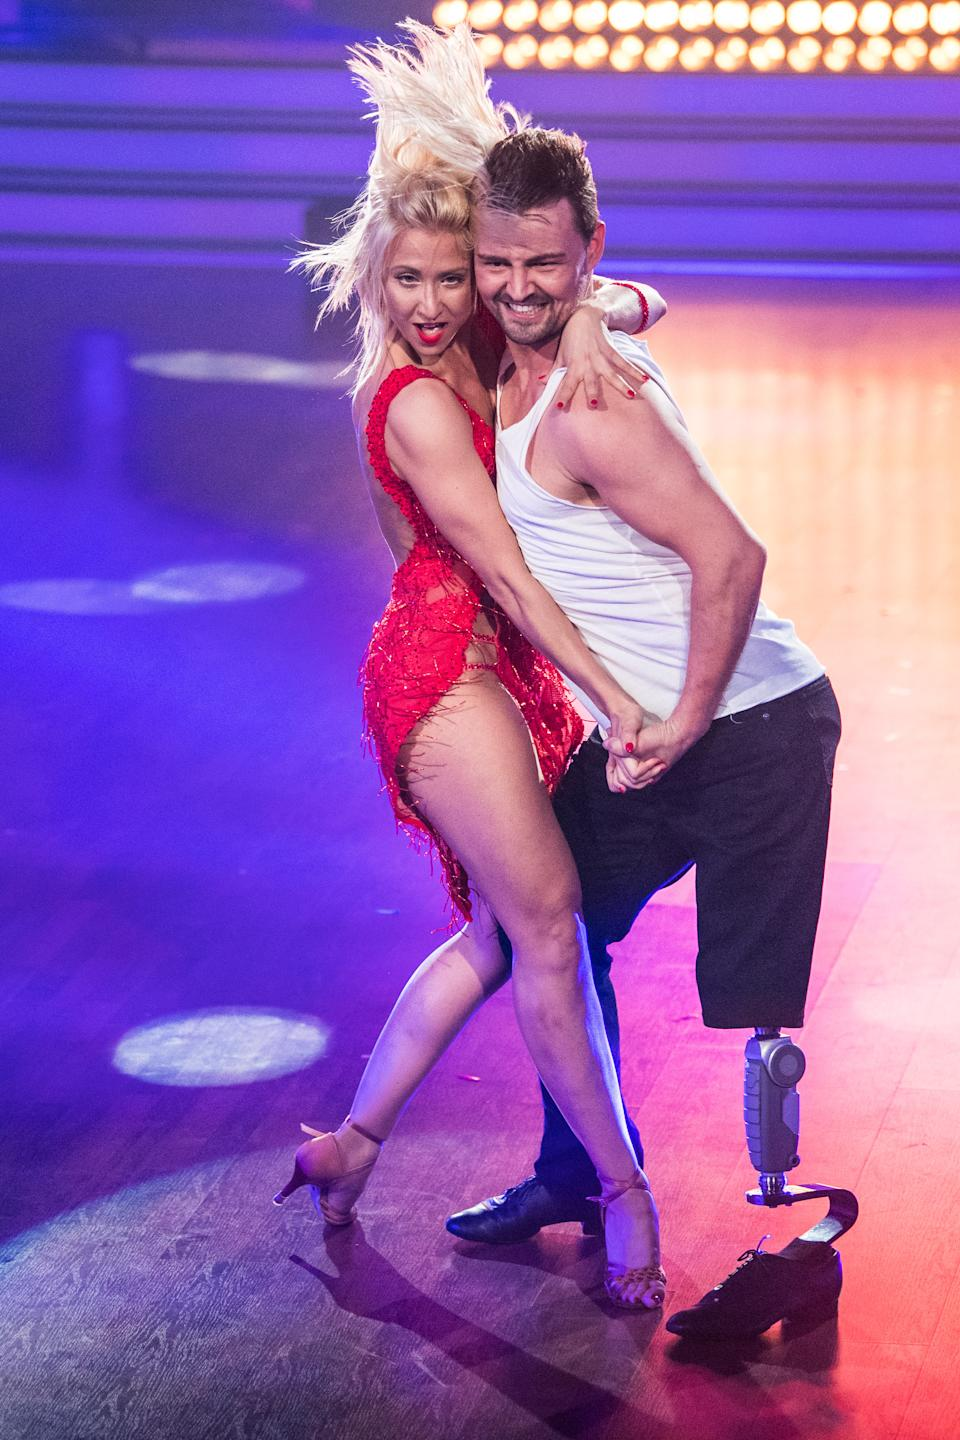 COLOGNE, GERMANY - MAY 12: Heinrich Popow and Kathrin Menzinger perform on stage during the 8th show of the tenth season of the television competition 'Let's Dance' on May 12, 2017 in Cologne, Germany. (Photo by Lukas Schulze/Getty Images)